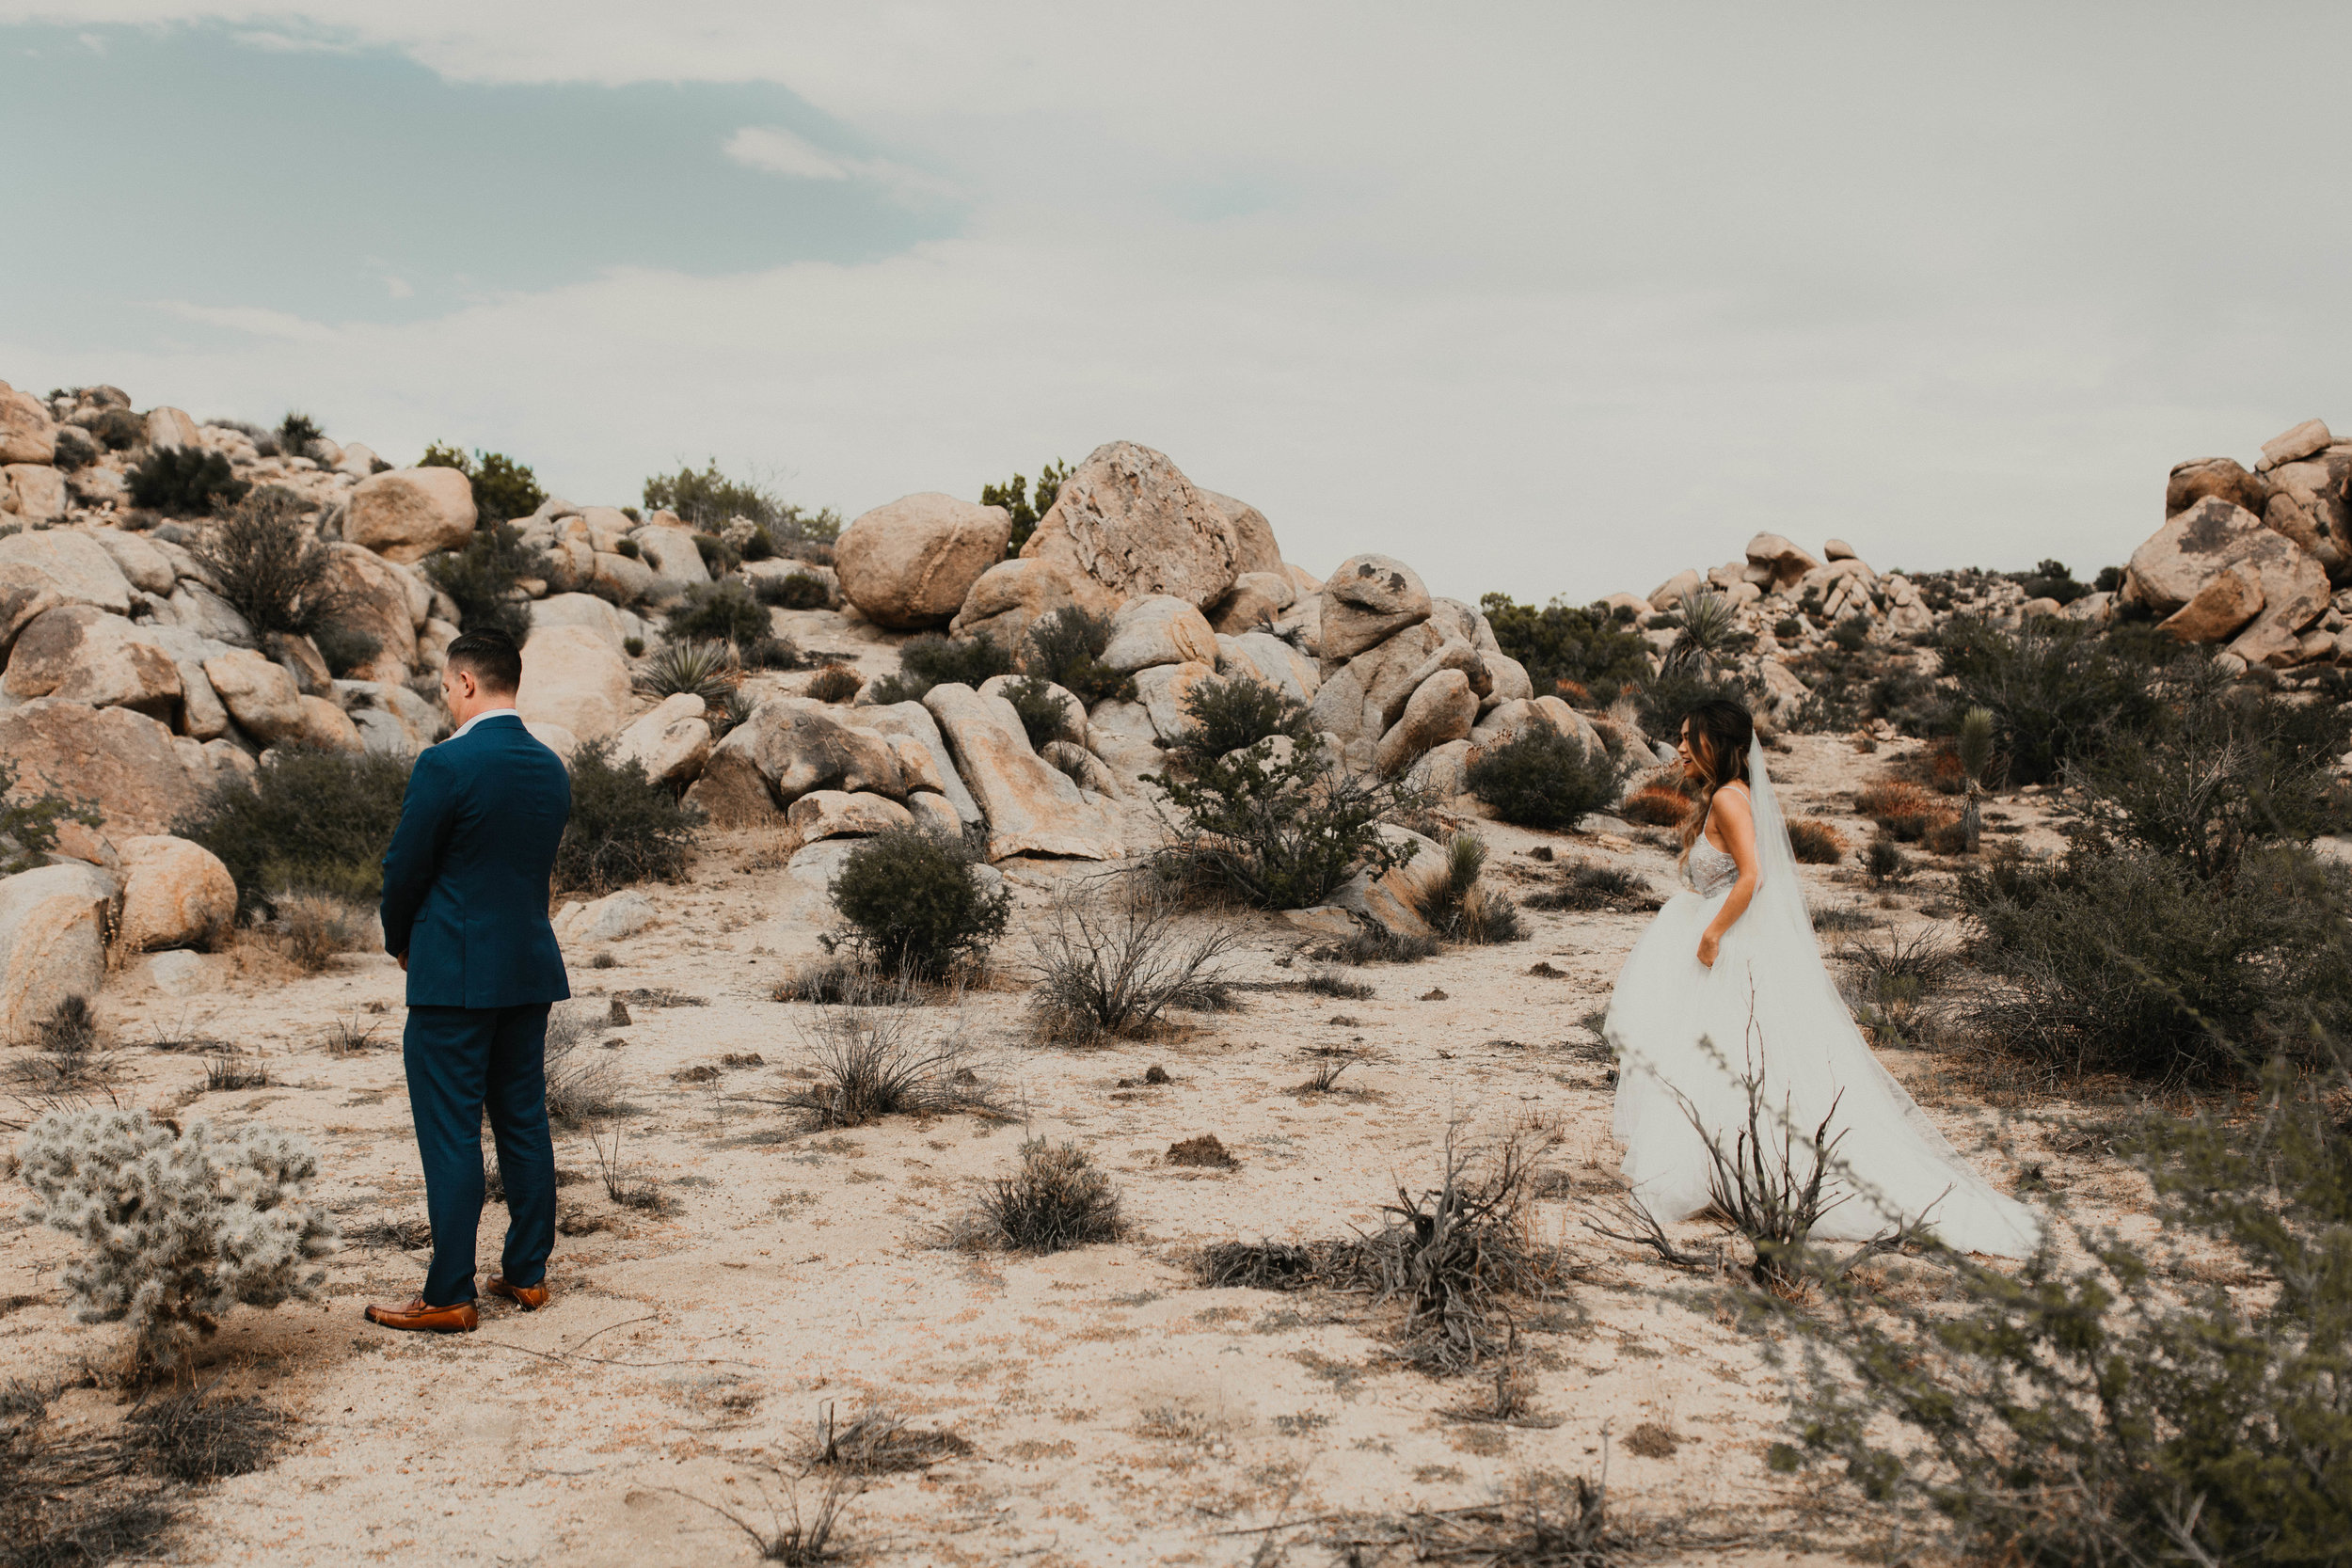 Bride and groom, first look, wedding inspiration, wedding goals, desert wedding, outdoor wedding. Wedding Hair and Makeup by Vanity Belle in Orange County (Costa Mesa) and San Diego (La Jolla)